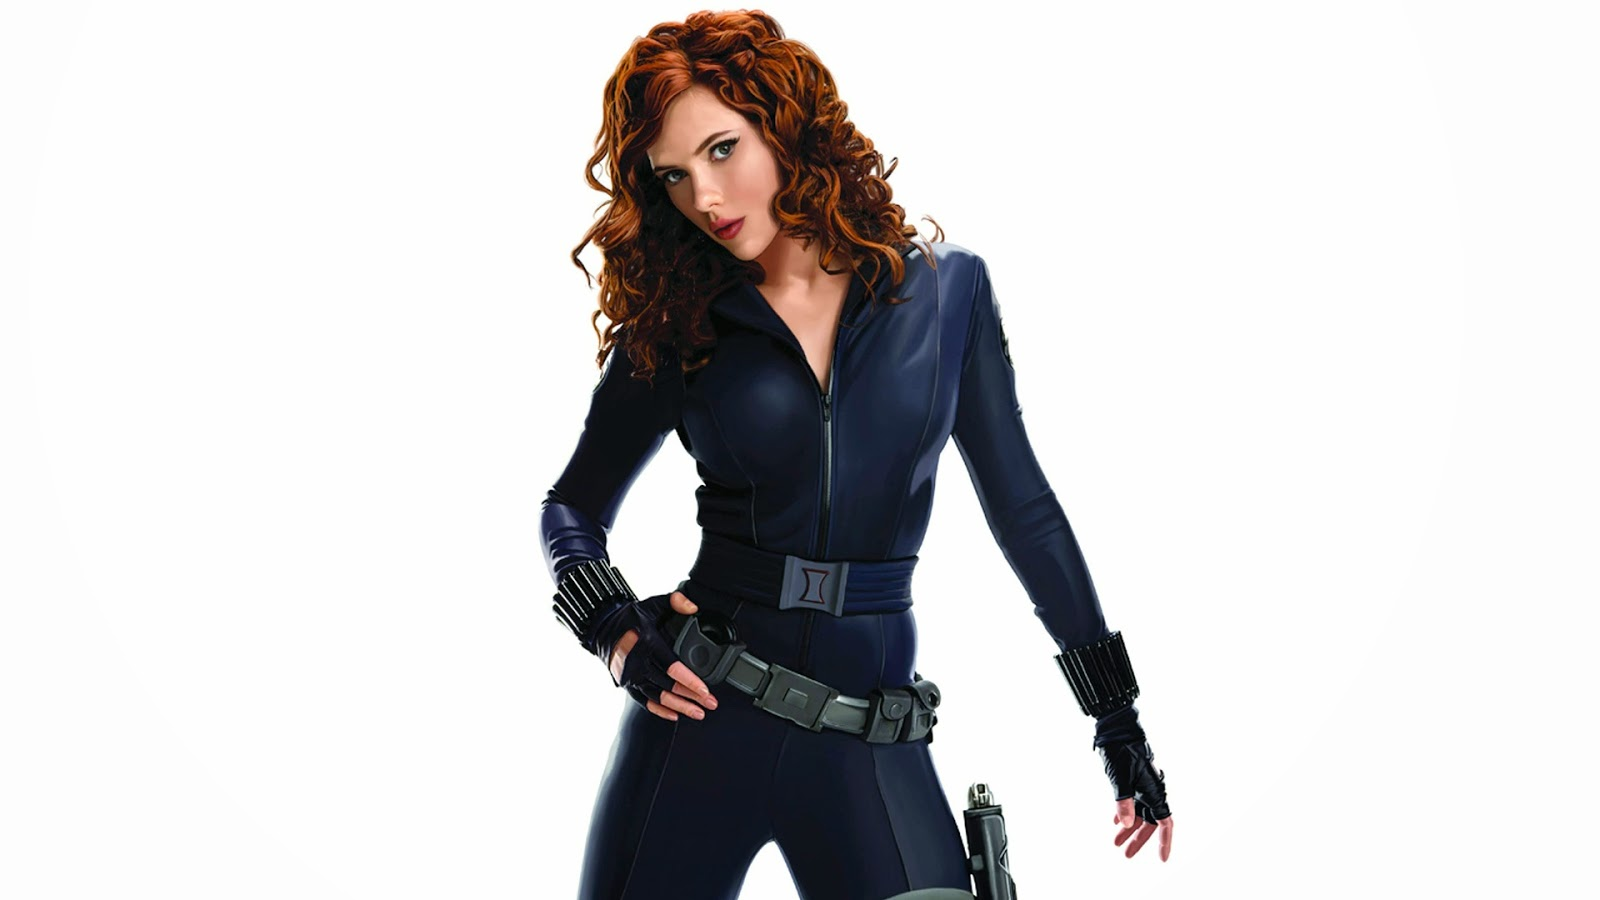 Scarlett Johansson Black Widow Photo